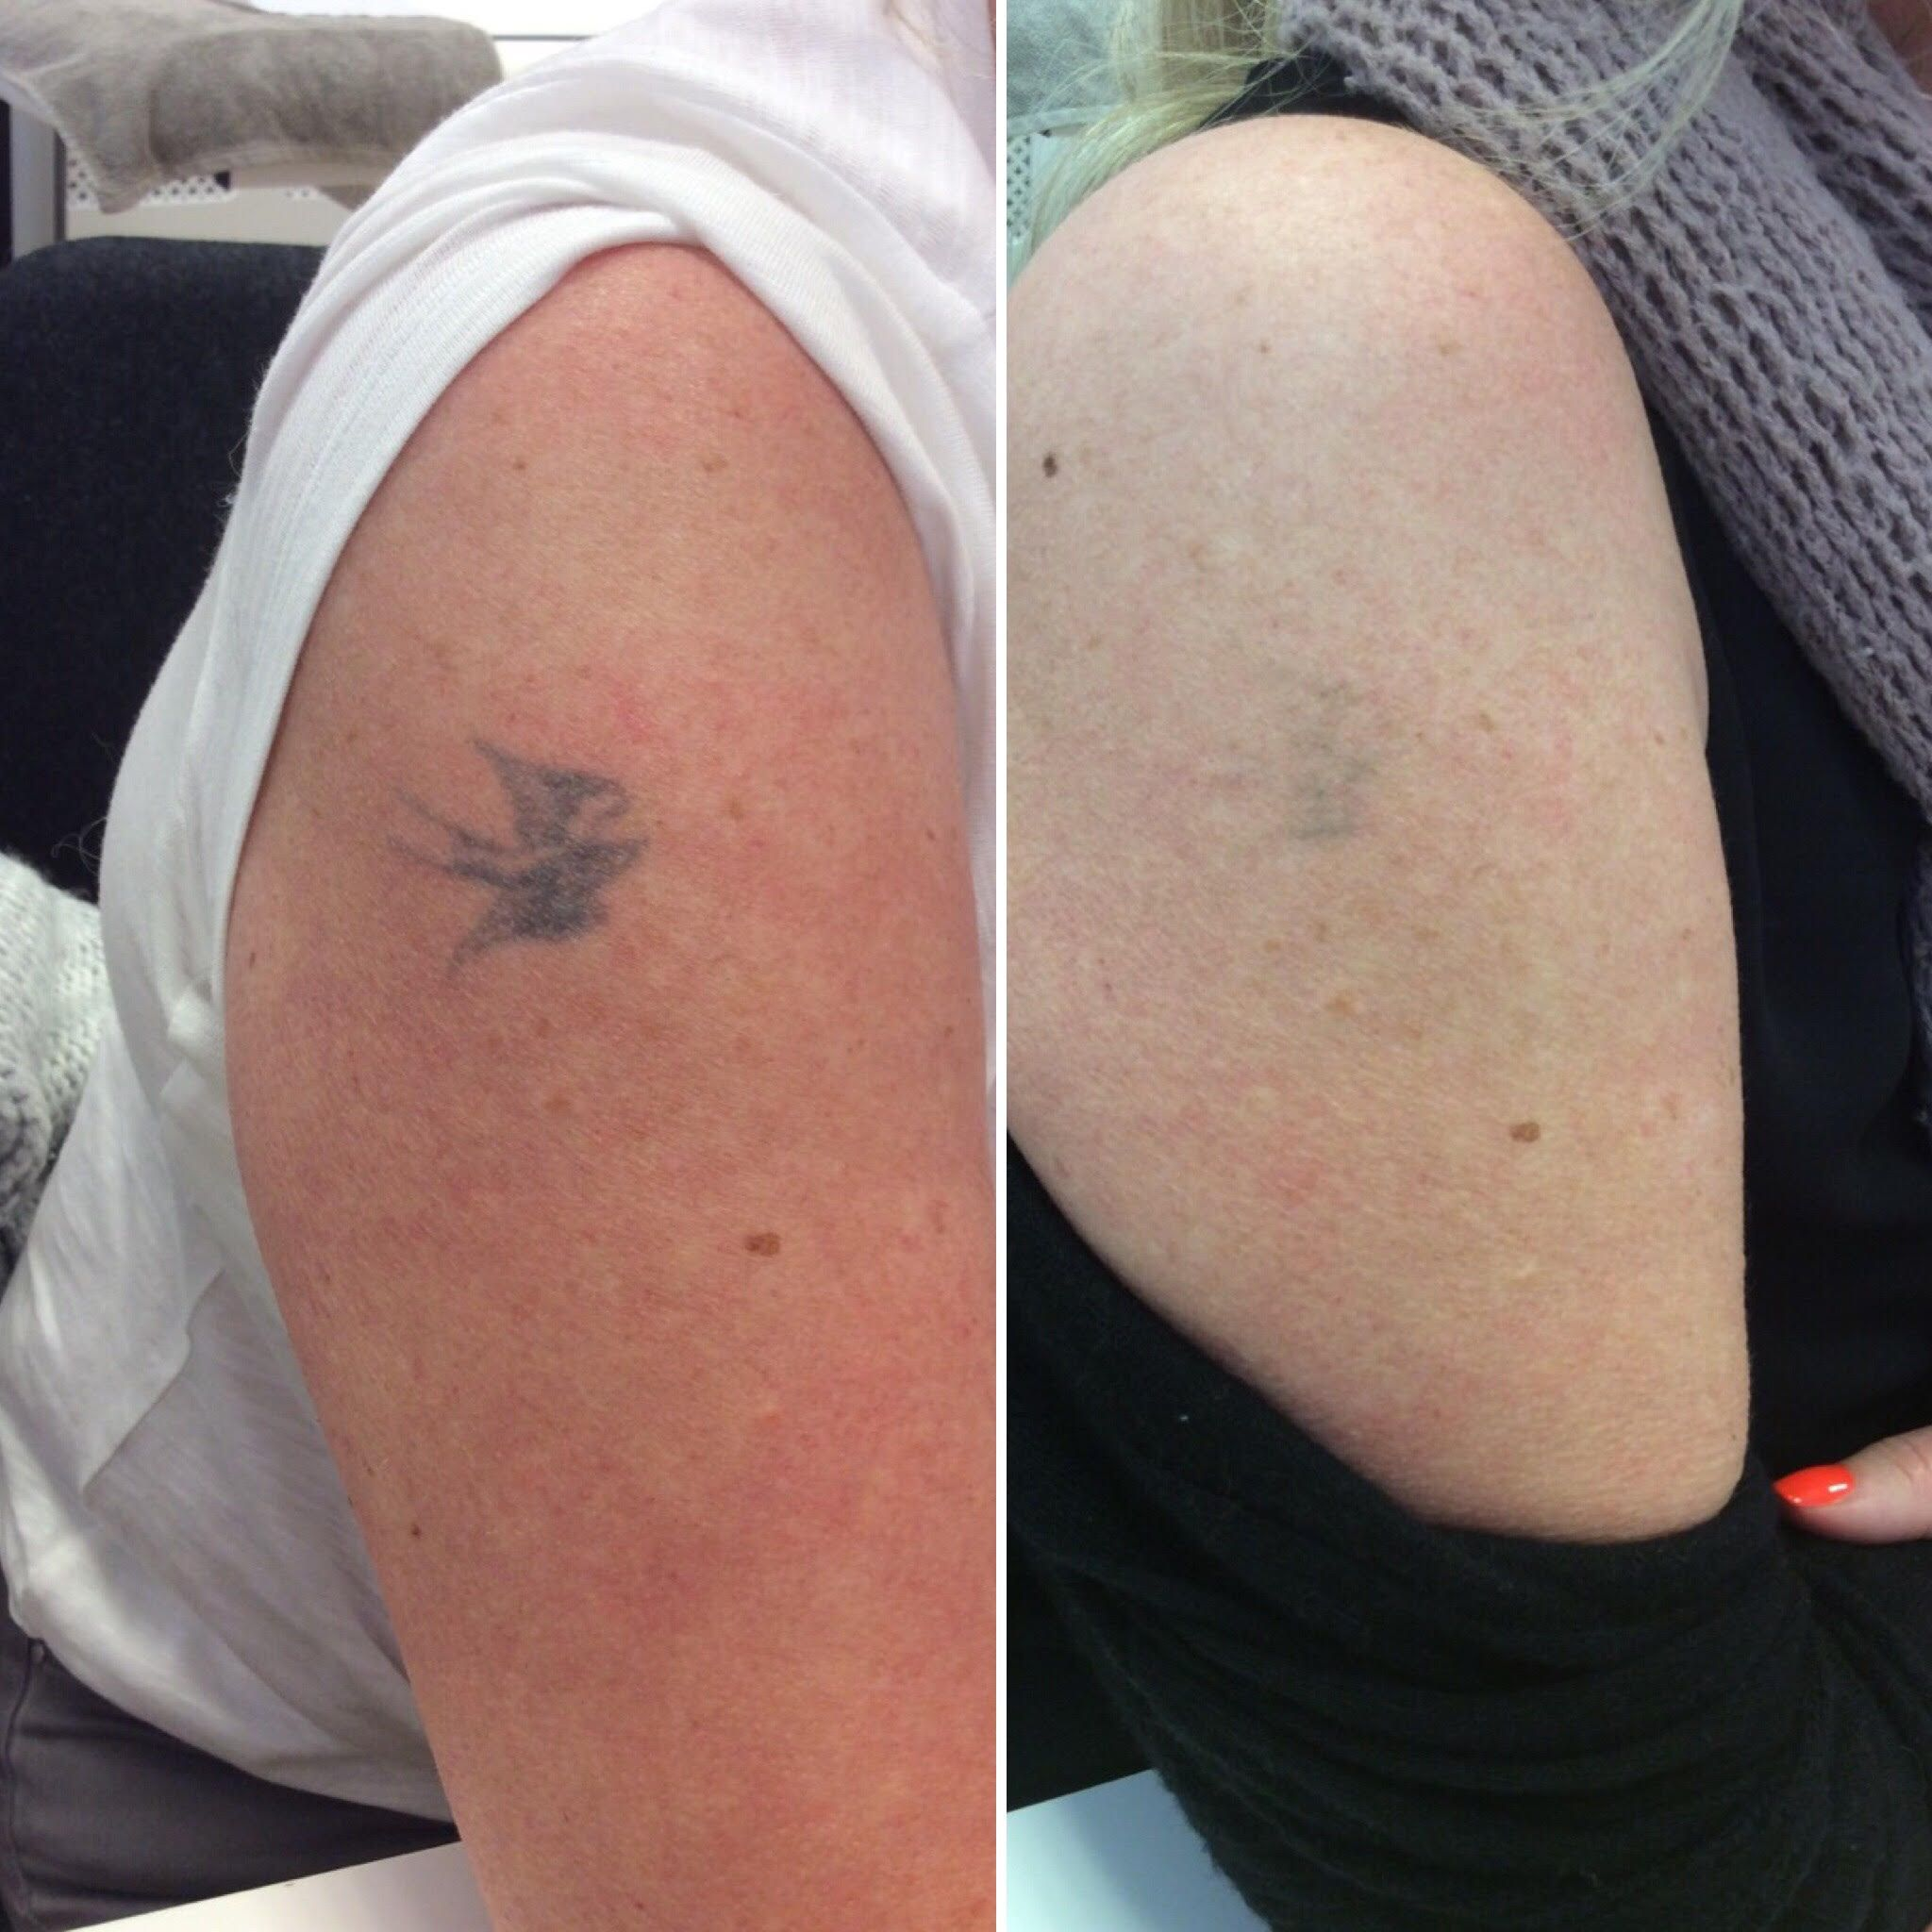 Almost Gone With 1 Session Of The Picosure Laser Tattoo Fading Depends On A Number Of Factors Location Of Th Laser Tattoo Removal Laser Tattoo Tattoo Removal